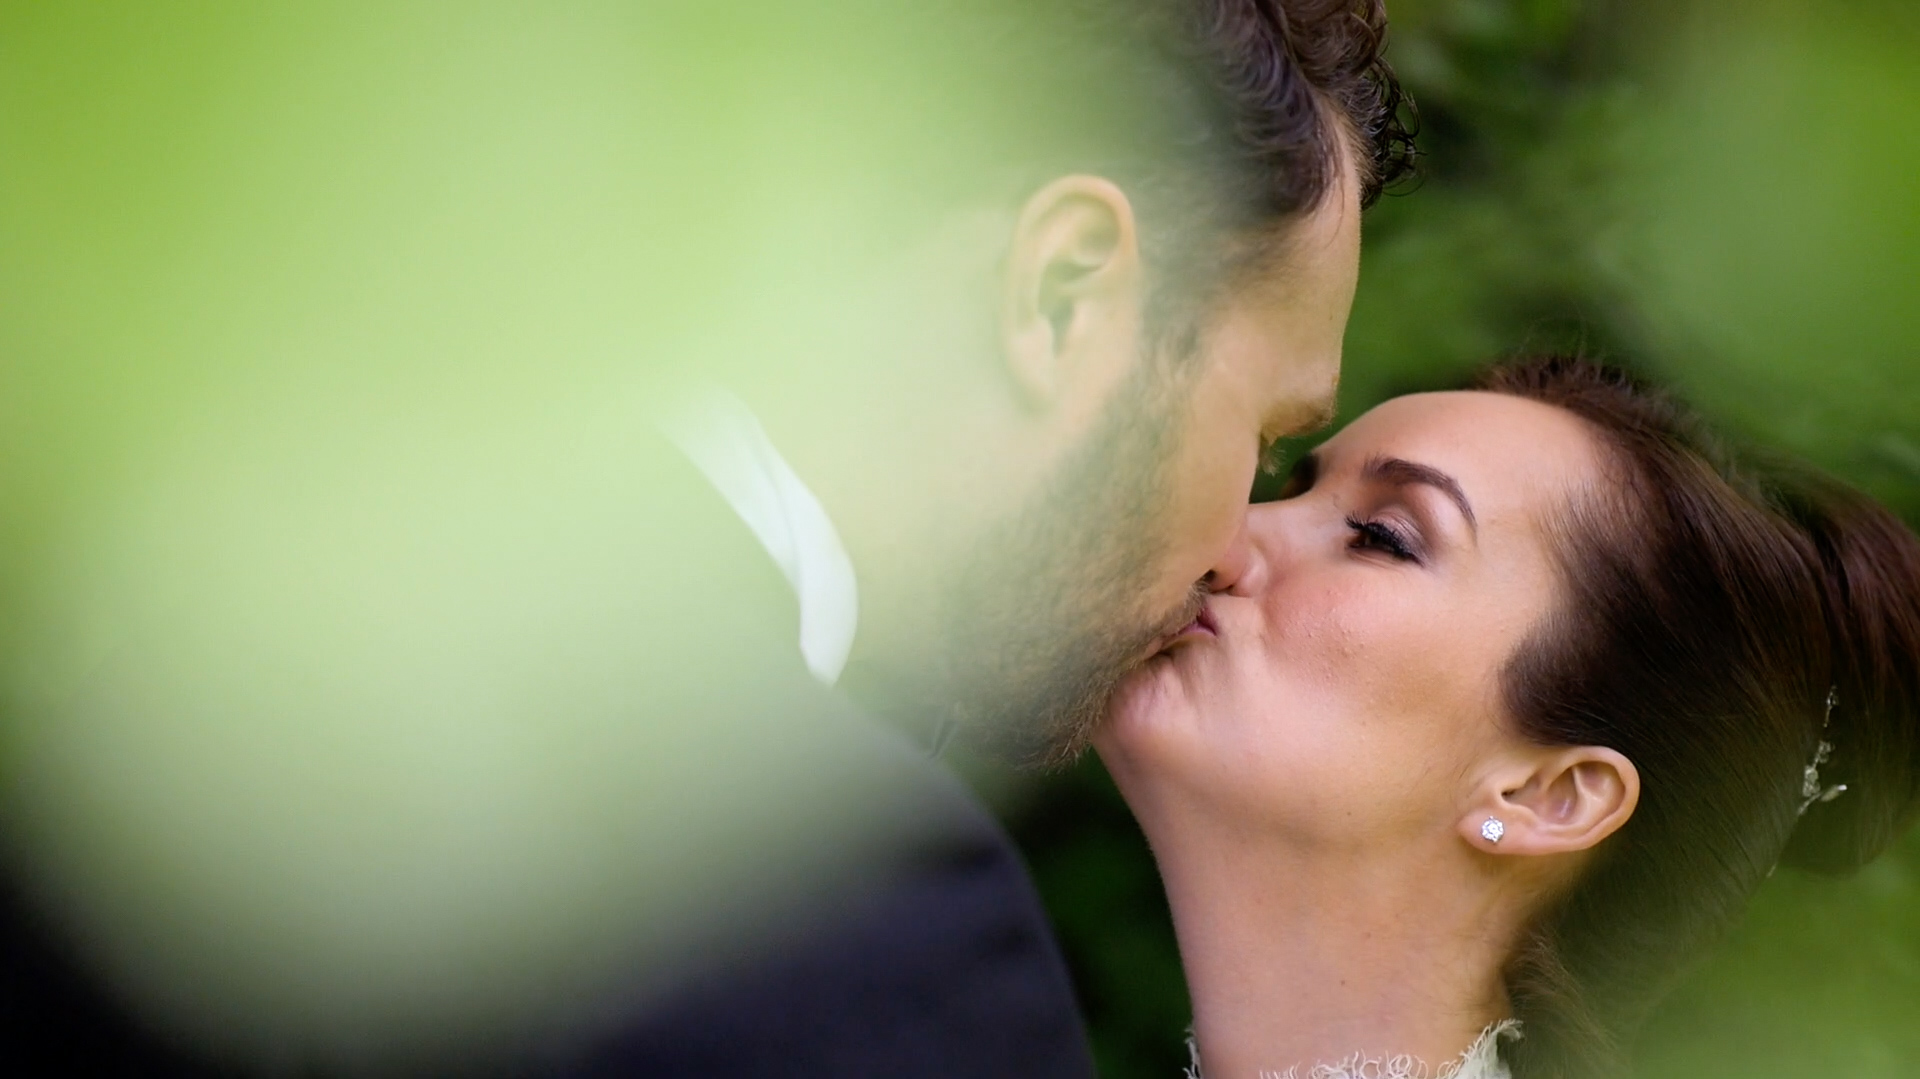 Slimming World Jennifer Sandra Ginley shares a kiss on her wedding day with her new husband, Luke.